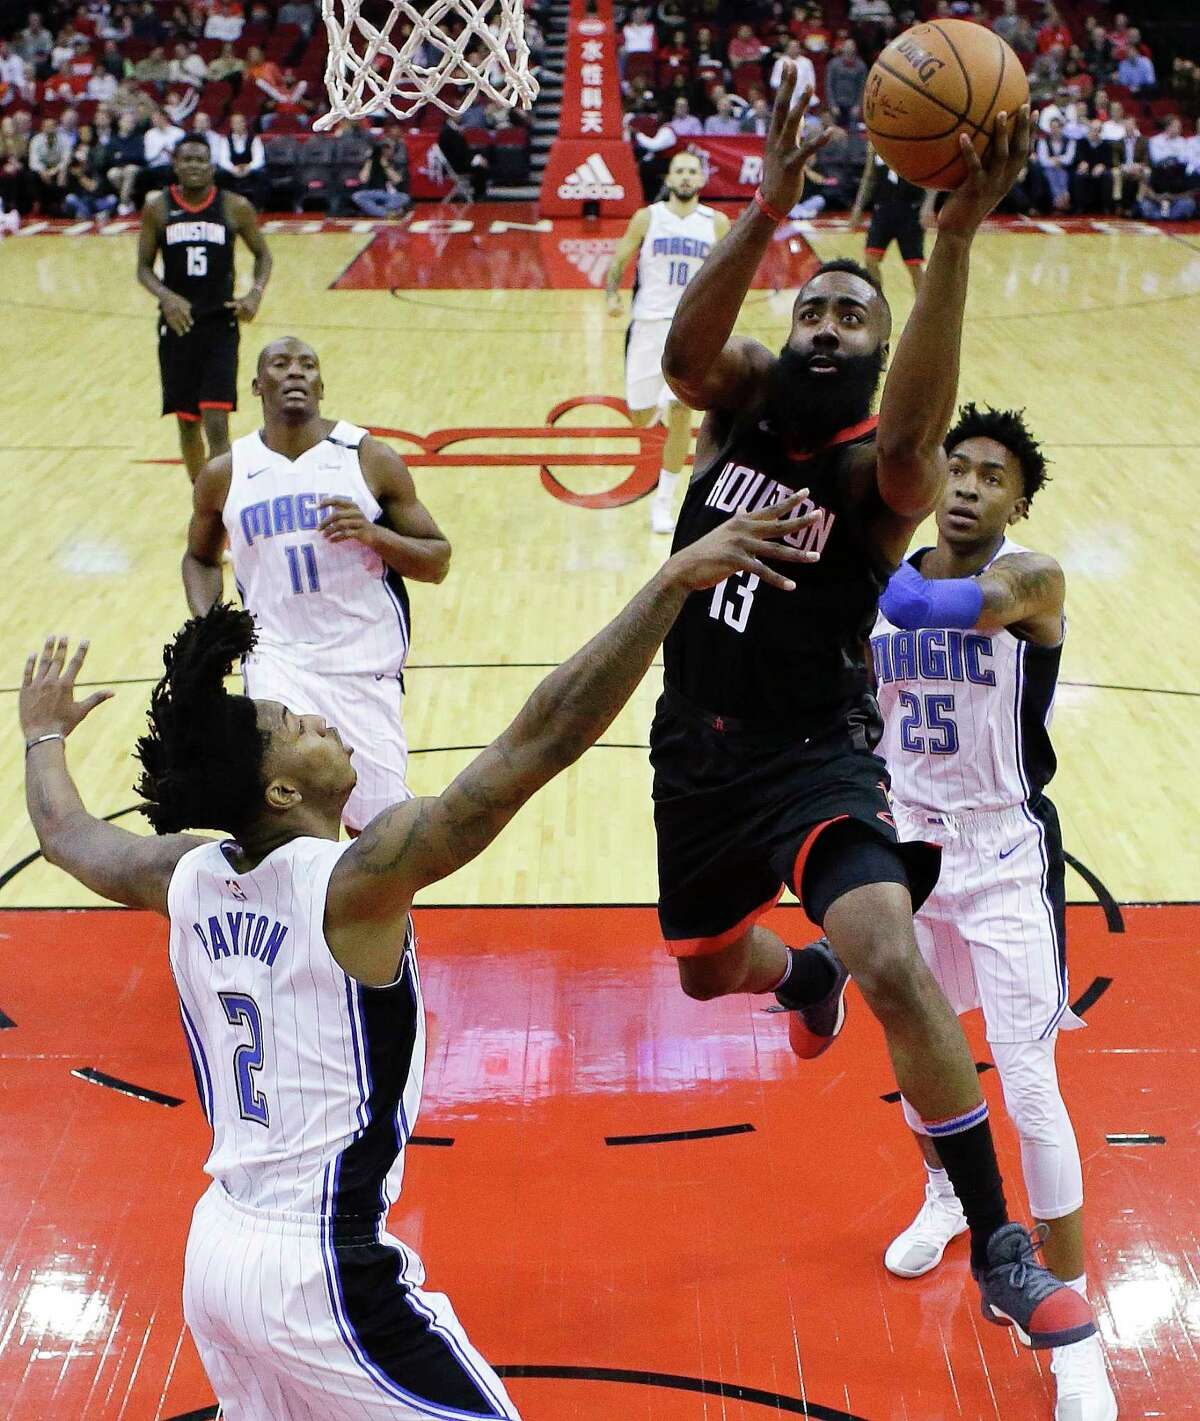 Houston Rockets guard James Harden drives to the basket as Orlando Magic guard Elfrid Payton, left, defends during the first half of an NBA basketball game Tuesday, Jan. 30, 2018, in Houston. (AP Photo/Eric Christian Smith)